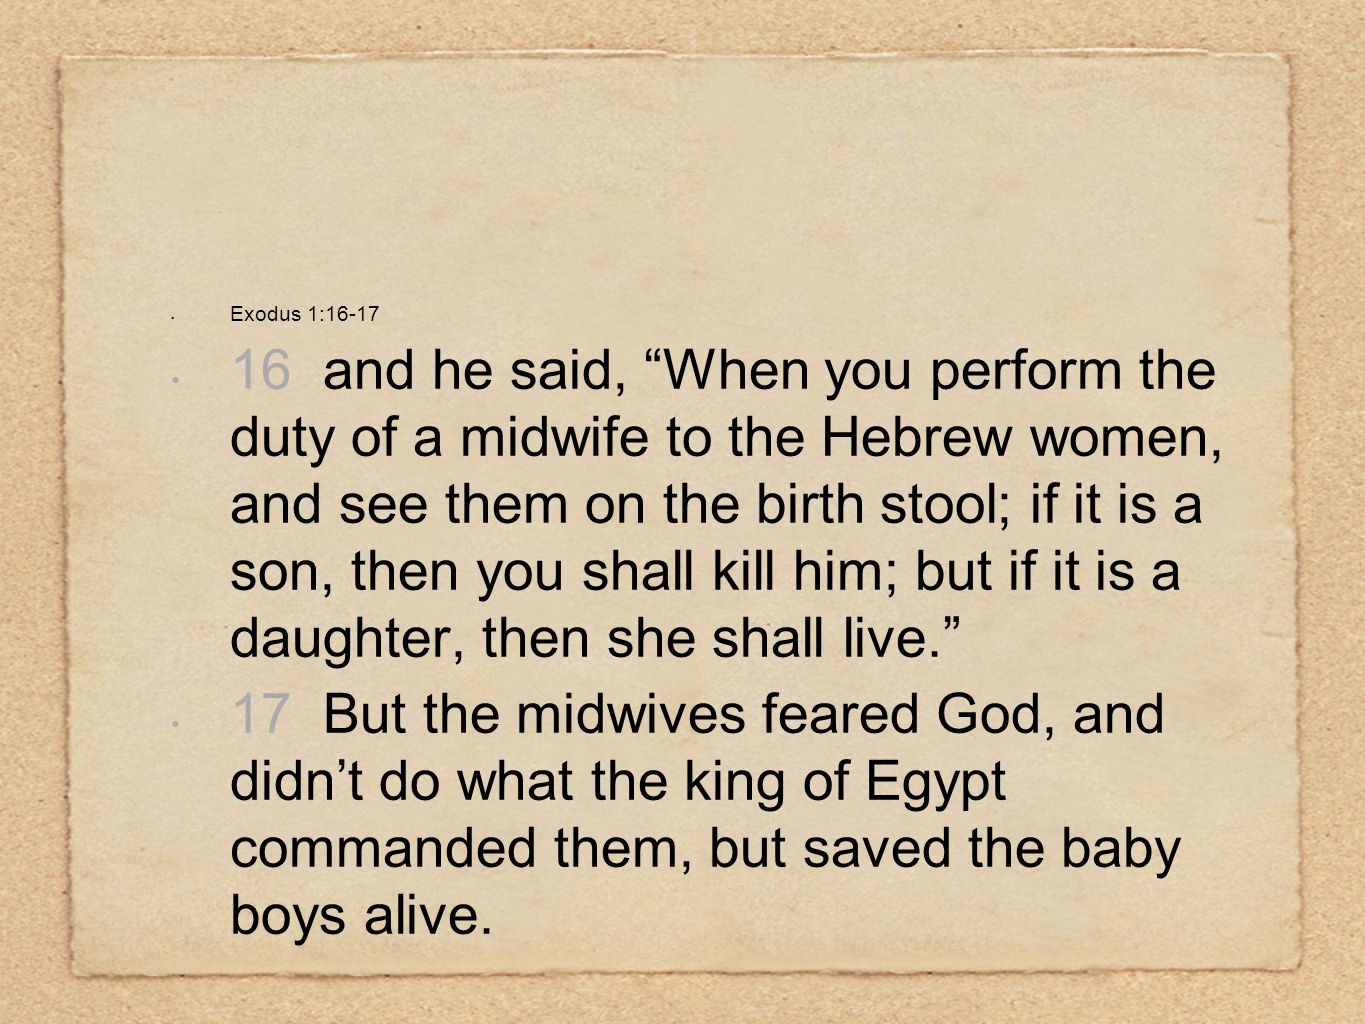 Exodus 1:16-17 16 and he said, When you perform the duty of a midwife to the Hebrew women, and see them on the birth stool; if it is a son, then you shall kill him; but if it is a daughter, then she shall live. 17 But the midwives feared God, and didn't do what the king of Egypt commanded them, but saved the baby boys alive.